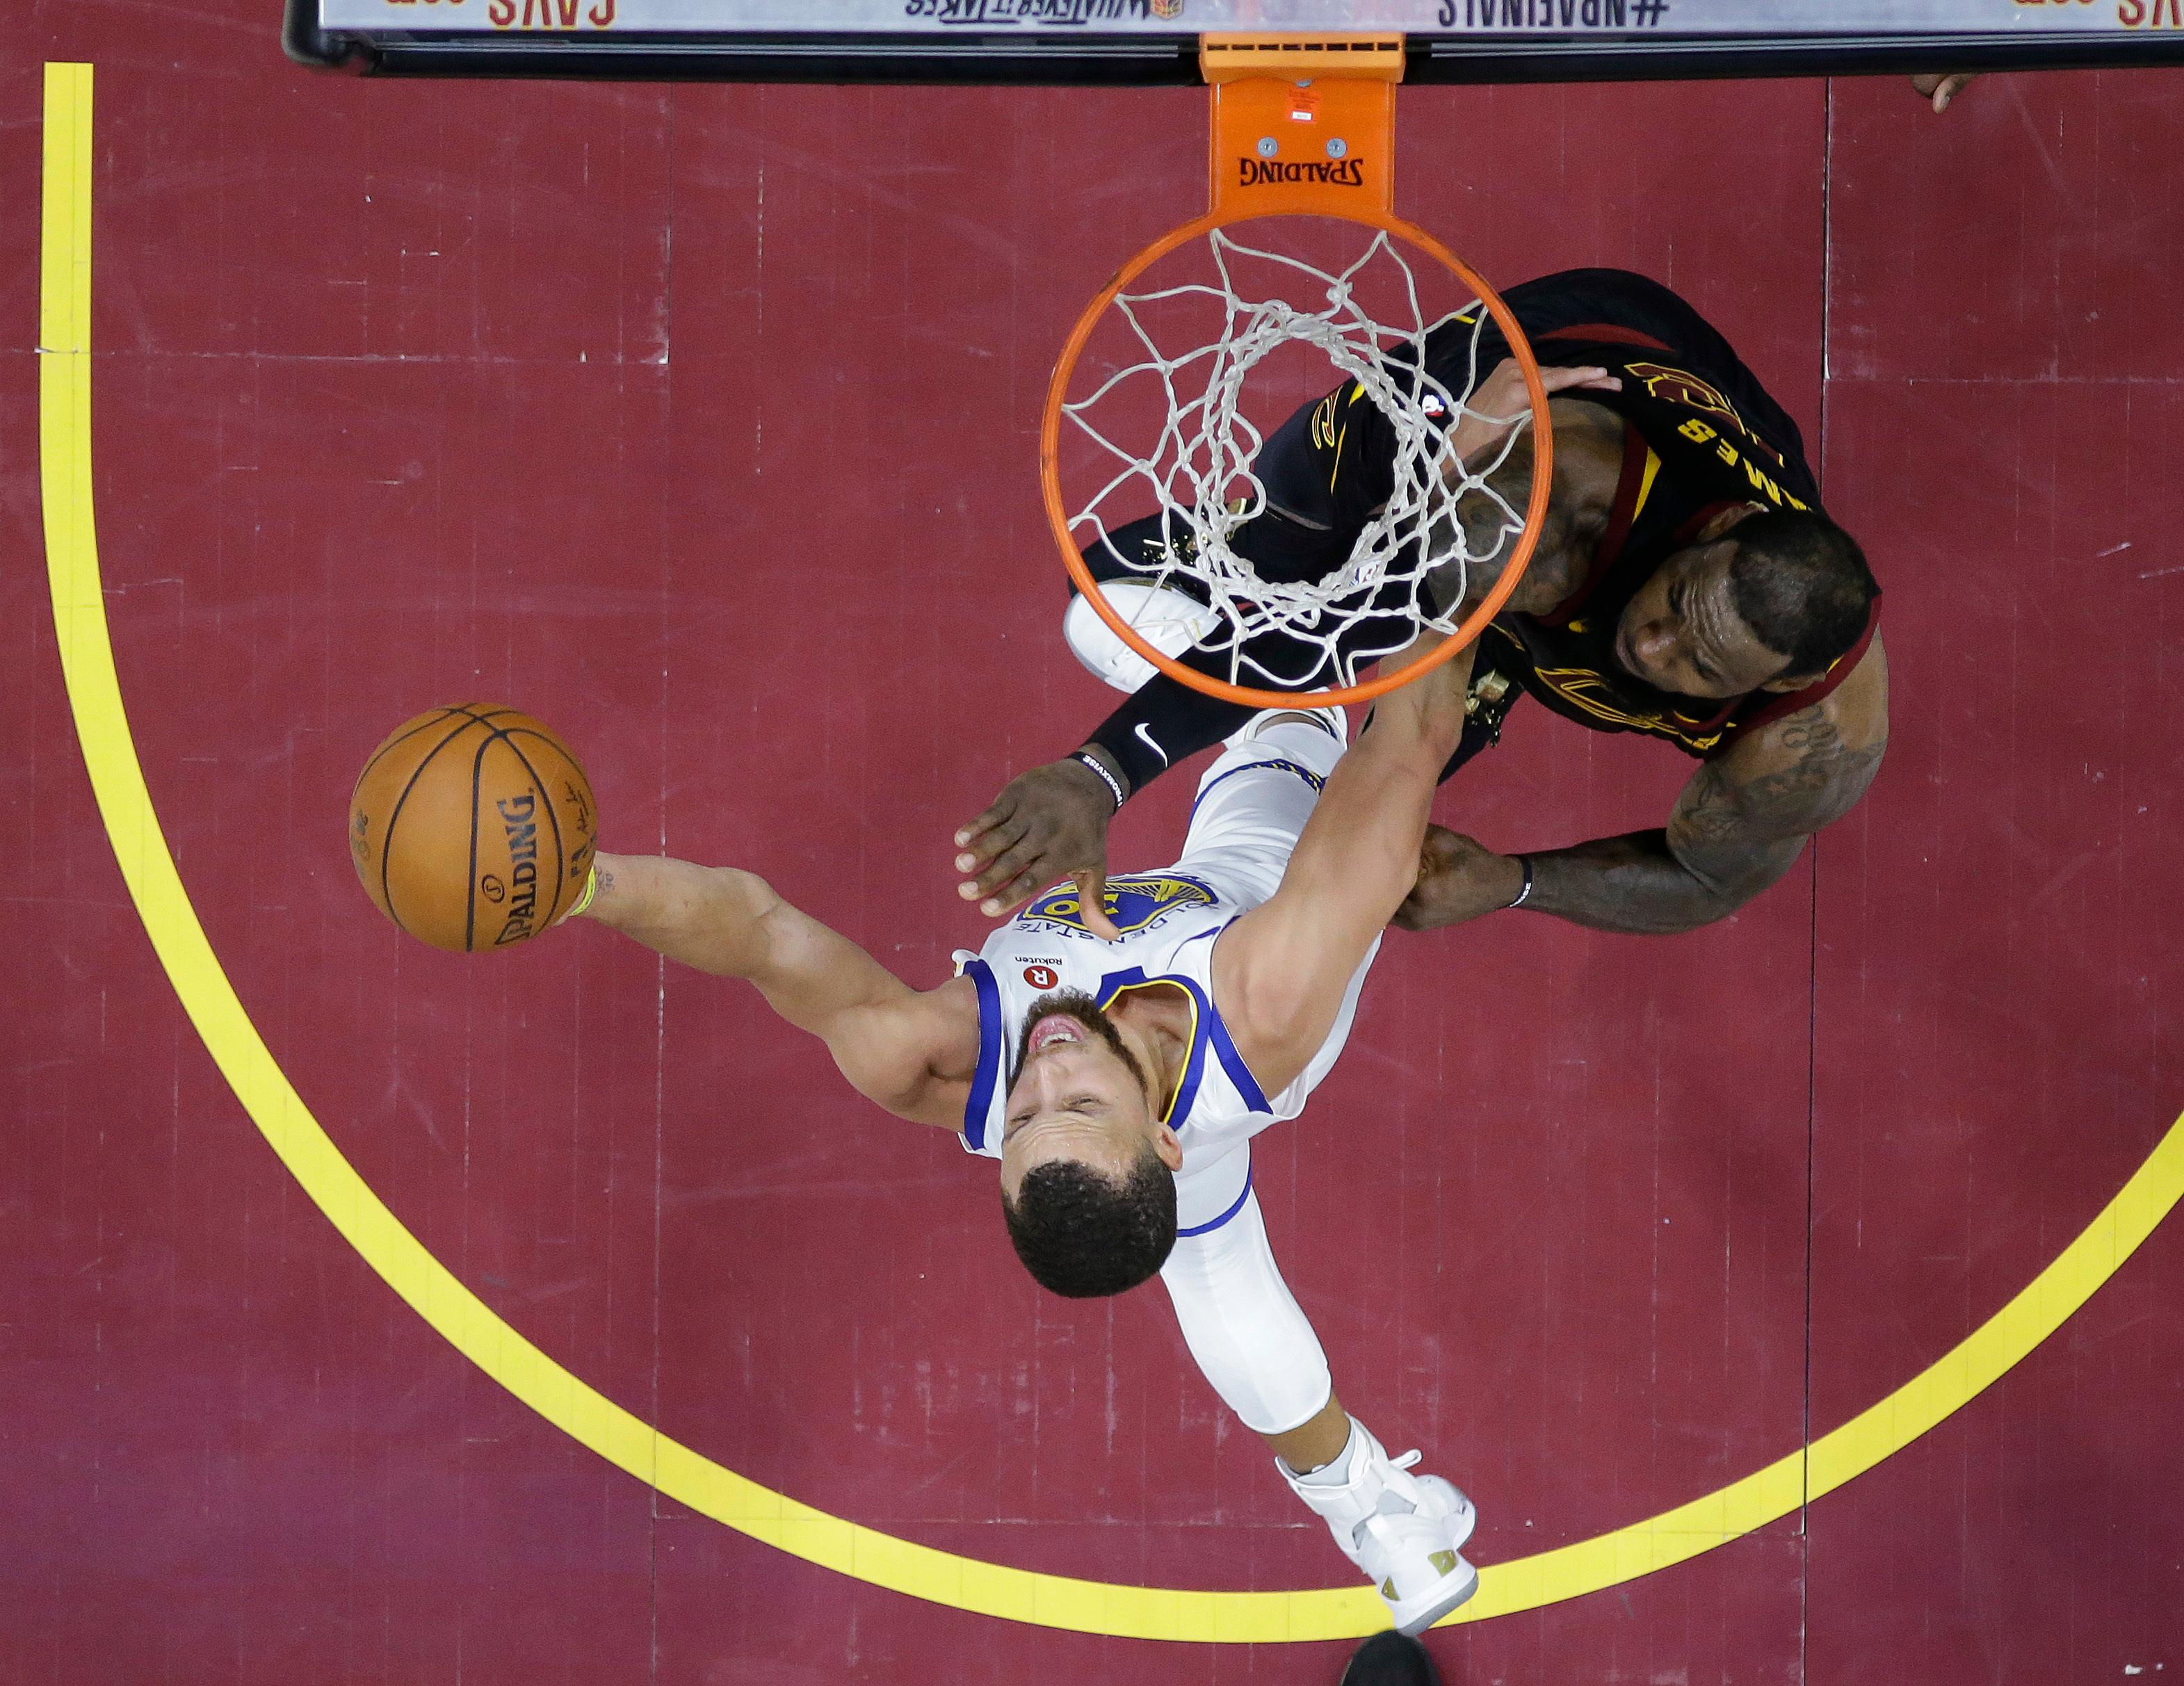 Golden State Warriors' Stephen Curry shoots against Cleveland Cavaliers' LeBron James during the second half of Game 4 of basketball's NBA Finals, Friday, June 8, 2018, in Cleveland. (AP Photo/Carlos Osorio, Pool)